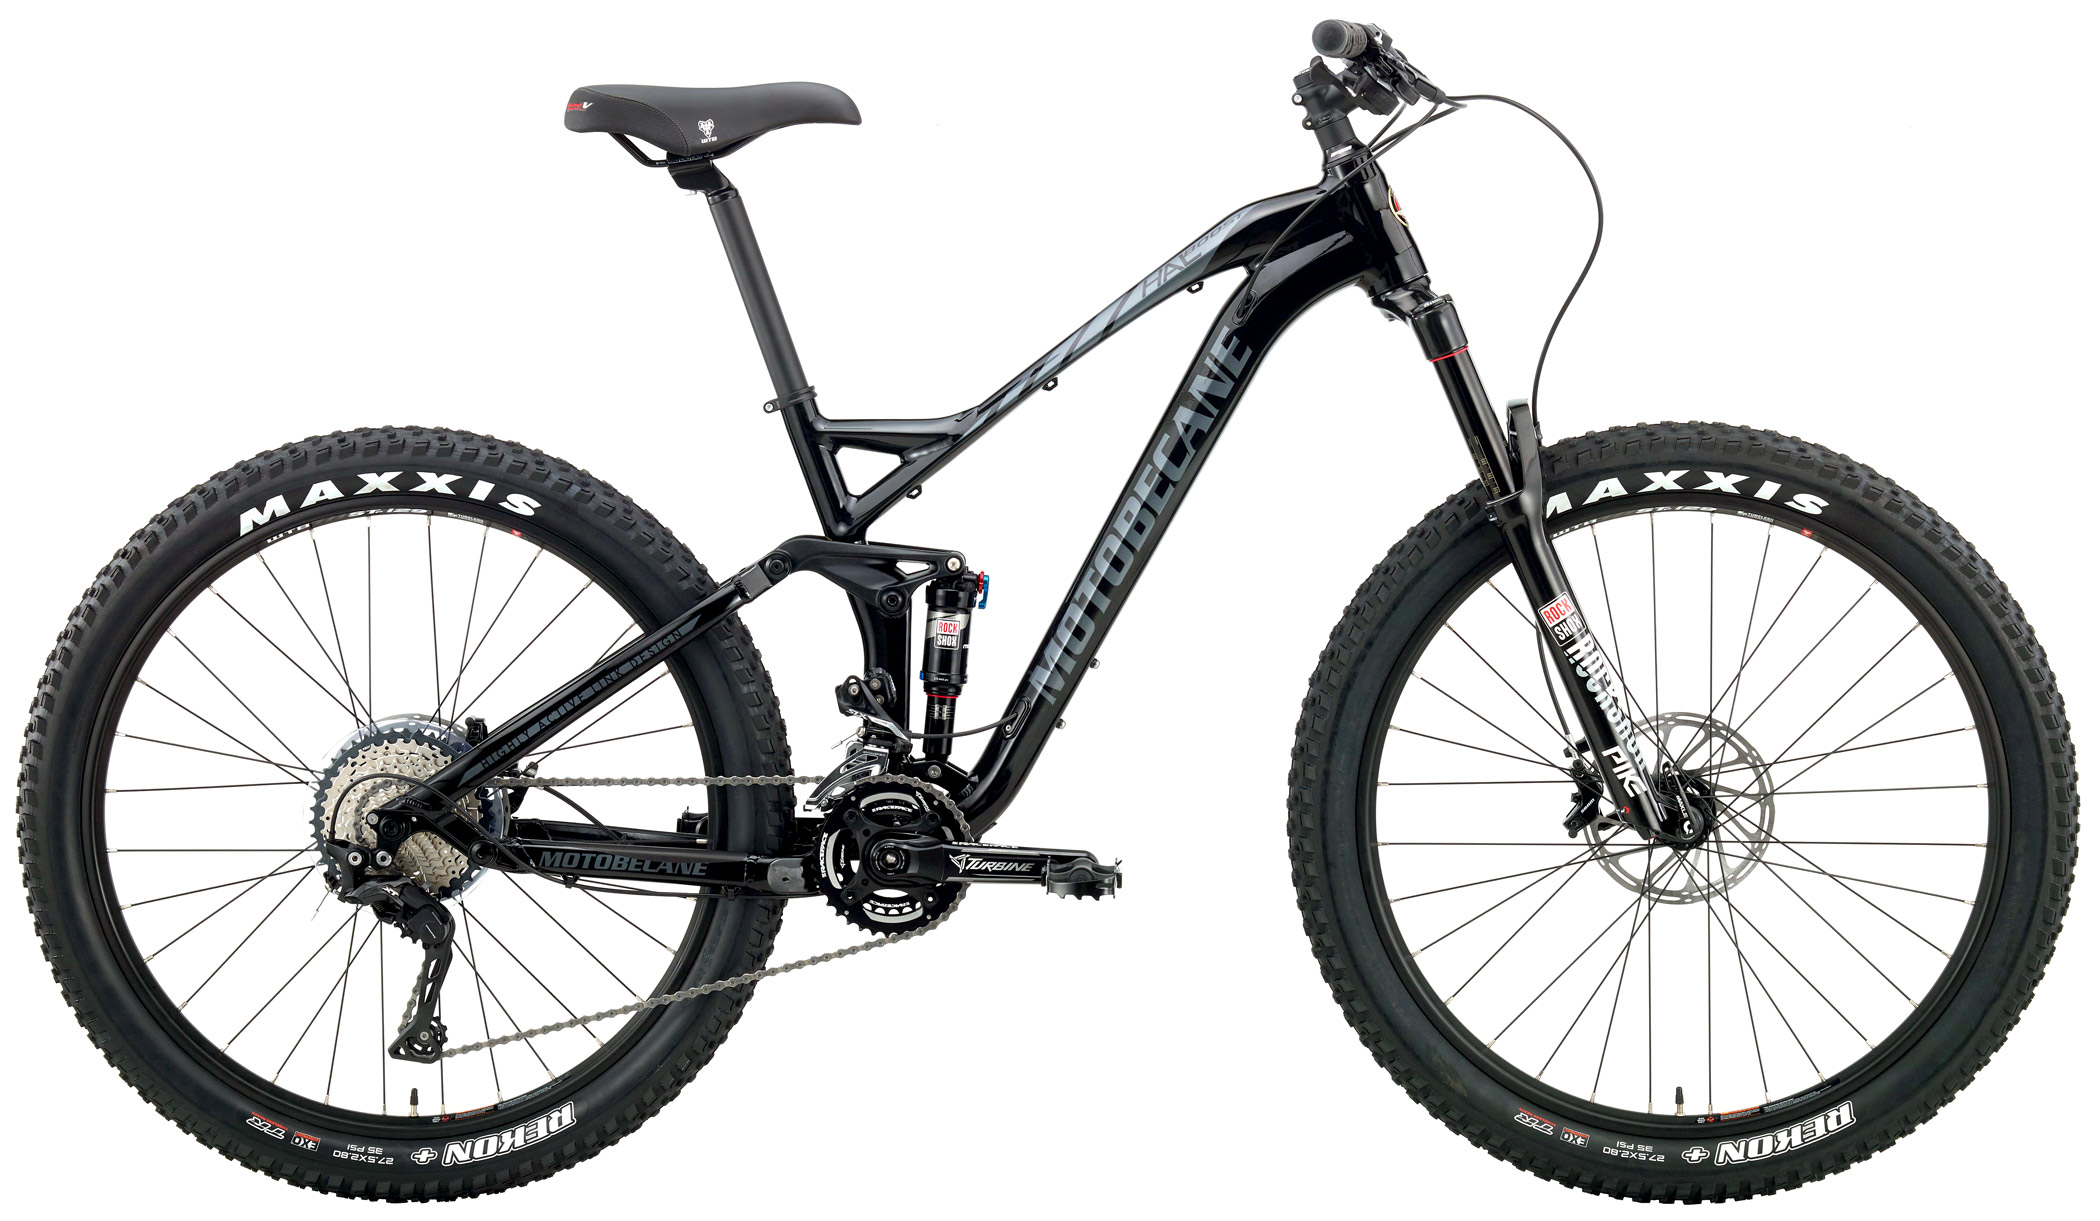 HAL BOOST COMP 27.5 PLUS - BOOST™ SPACING W/ SHIMANO & ROCKSHOX